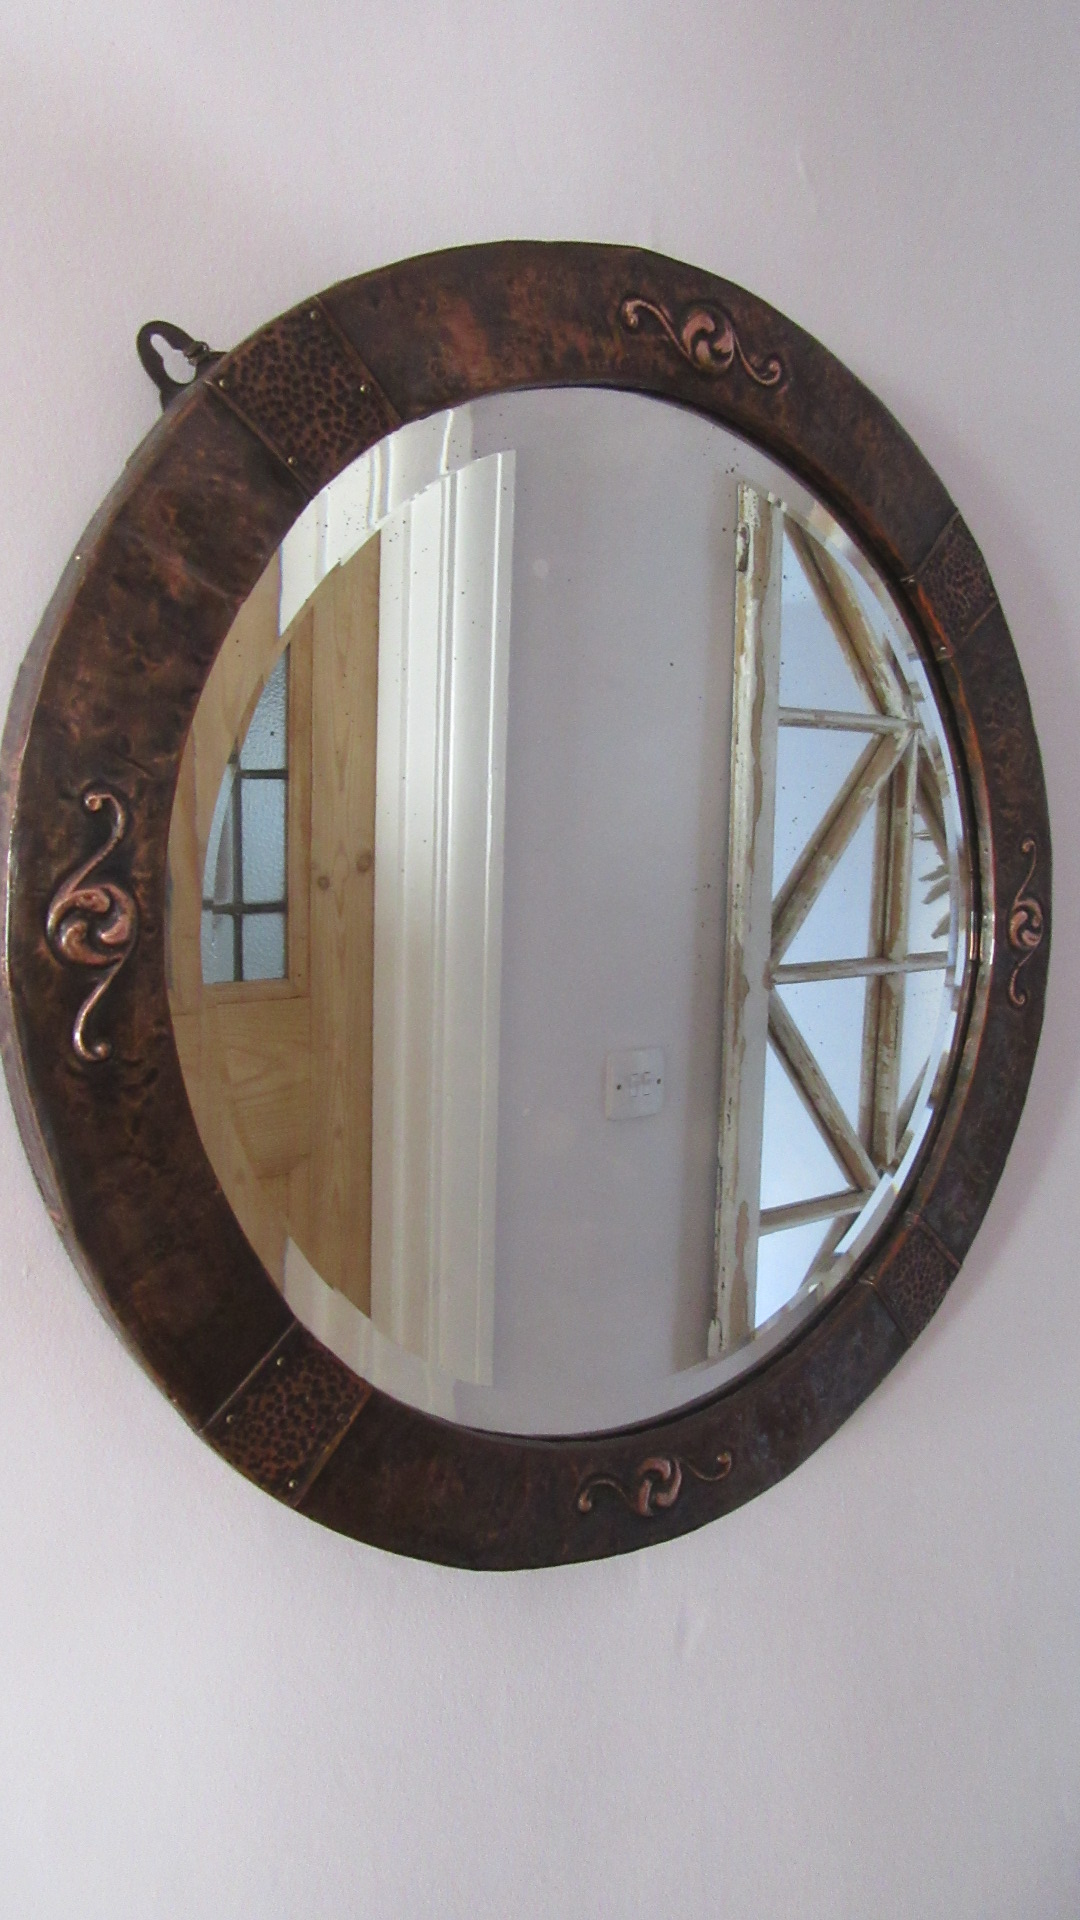 ANTIQUE COPPER ARTS & CRAFTS WALL MIRROR